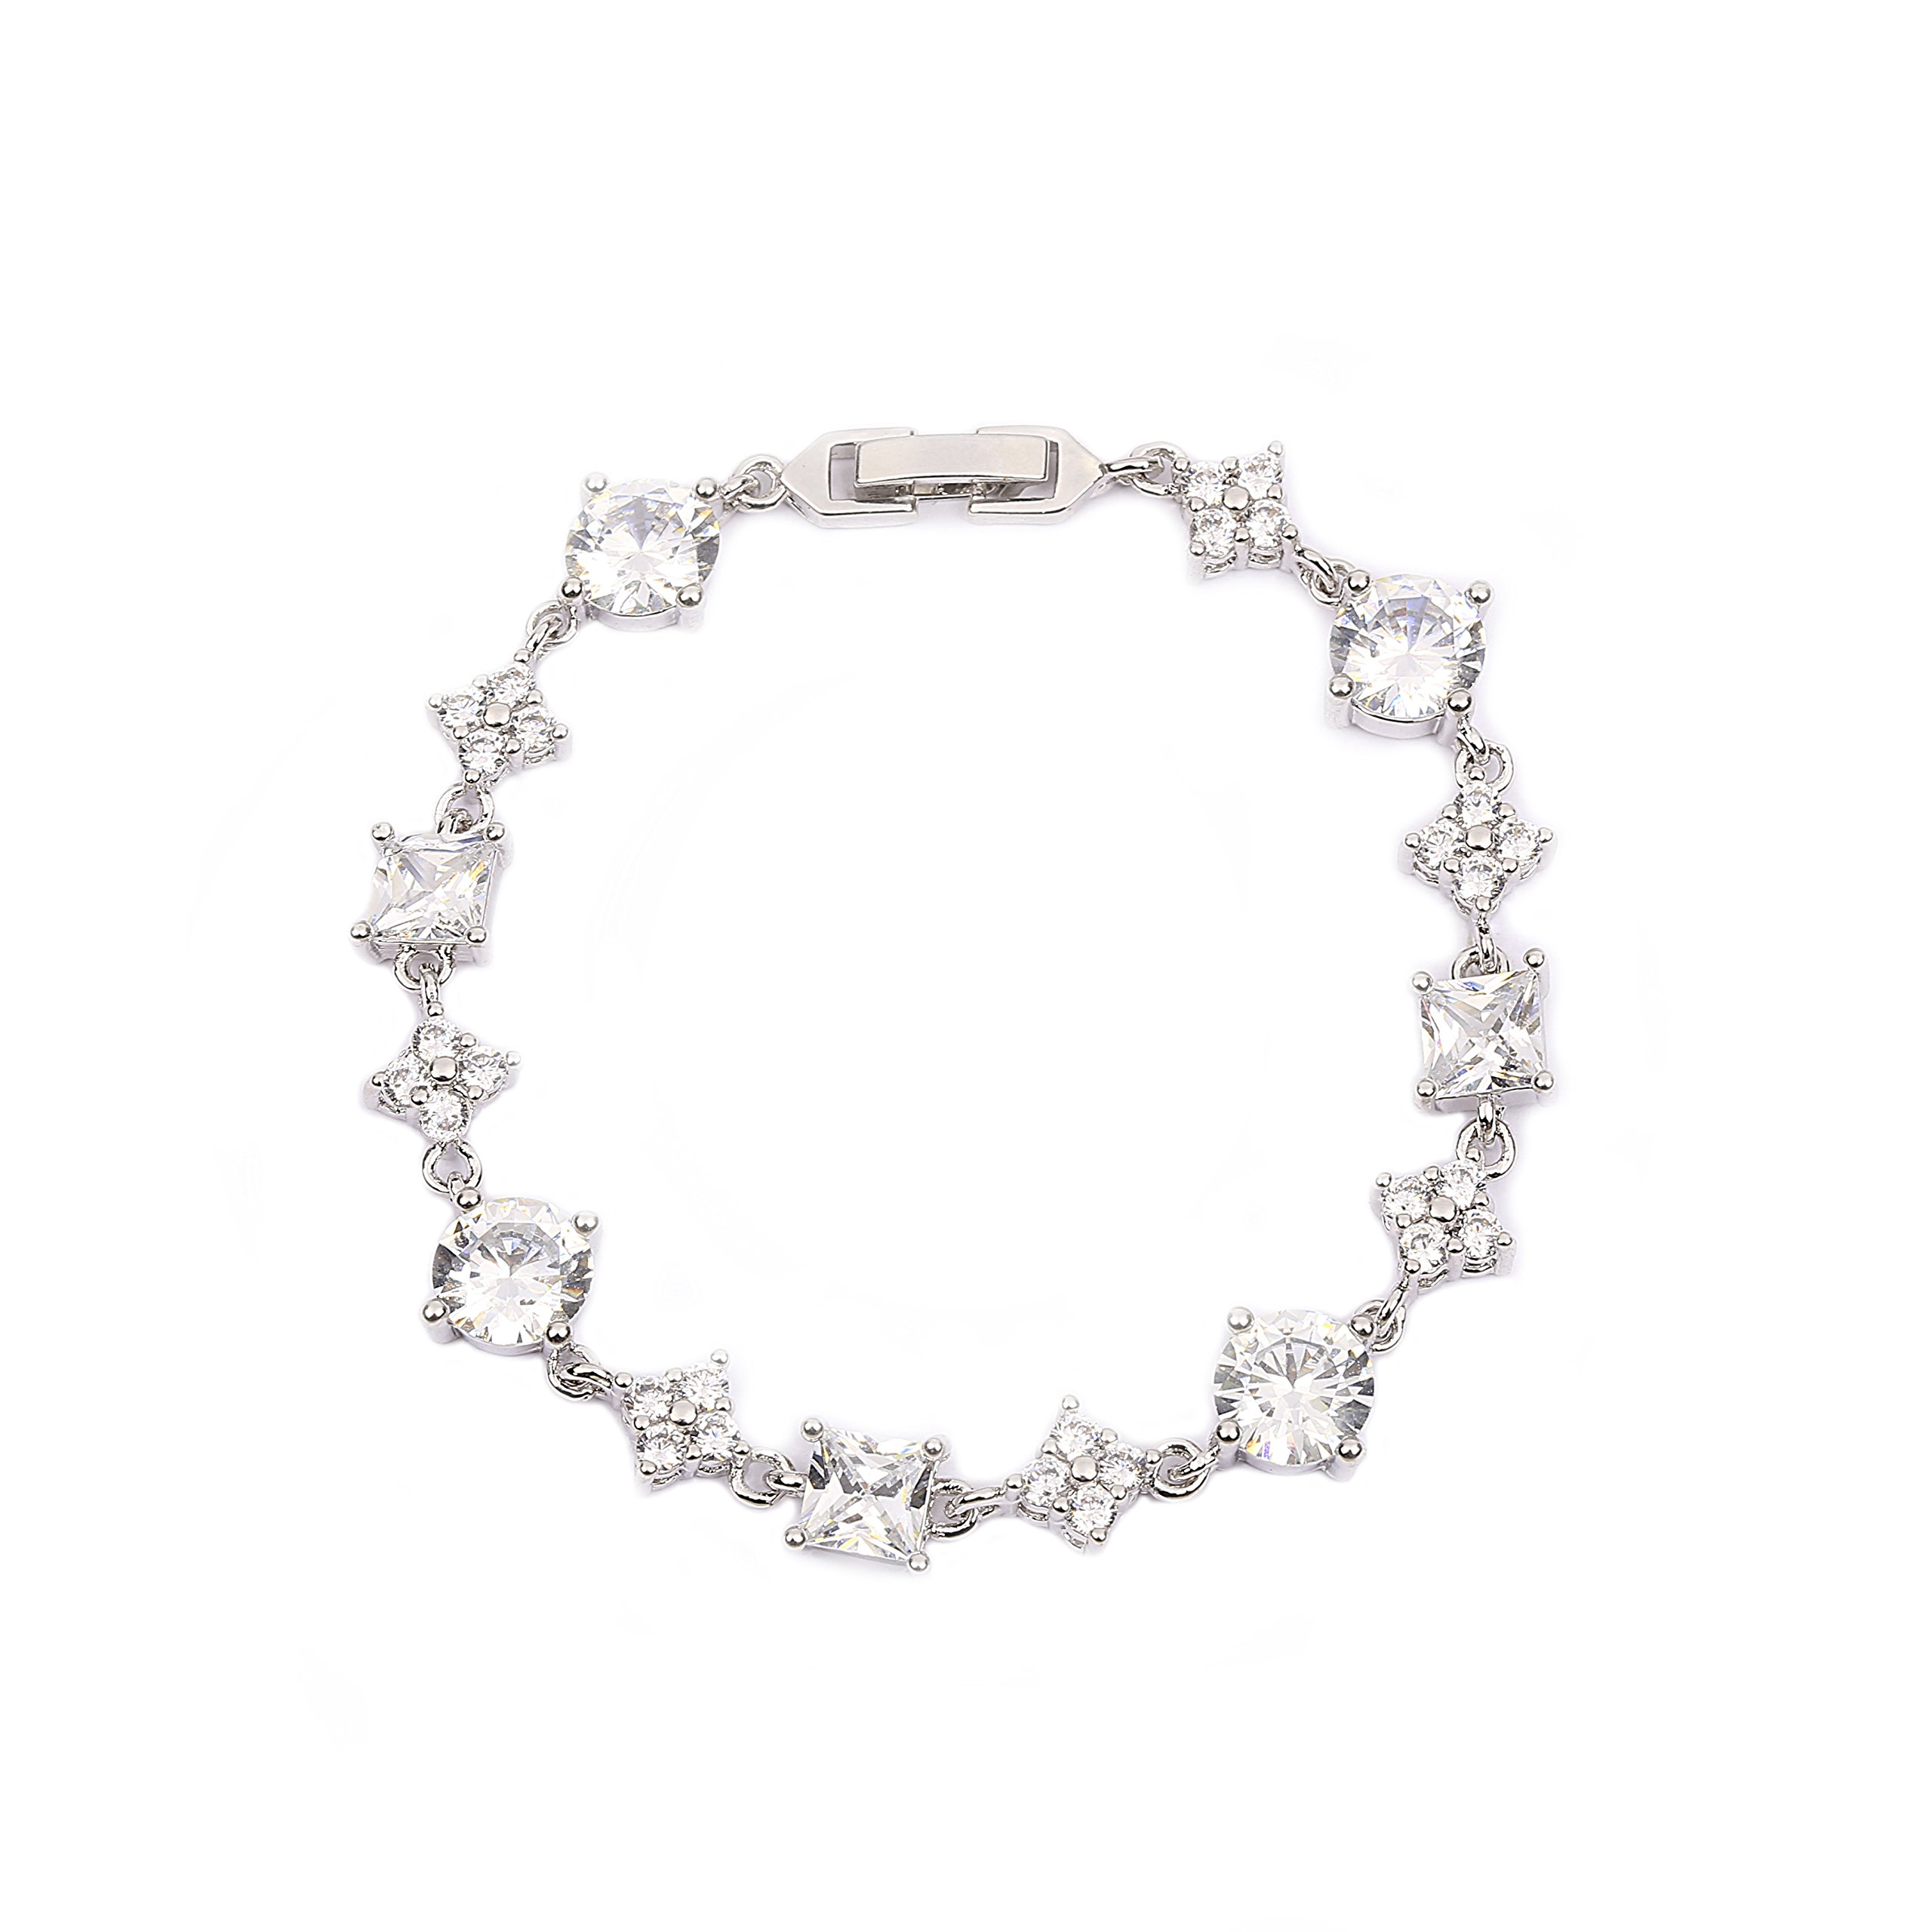 AMYJANE Silver Tennis Bracelet for Women - Sterling Silver Square and Round Swarovski Crystal Cubic Zirconia CZ Bridal Bracelet for Wedding Party Prom Girls Bridesmaids Gift